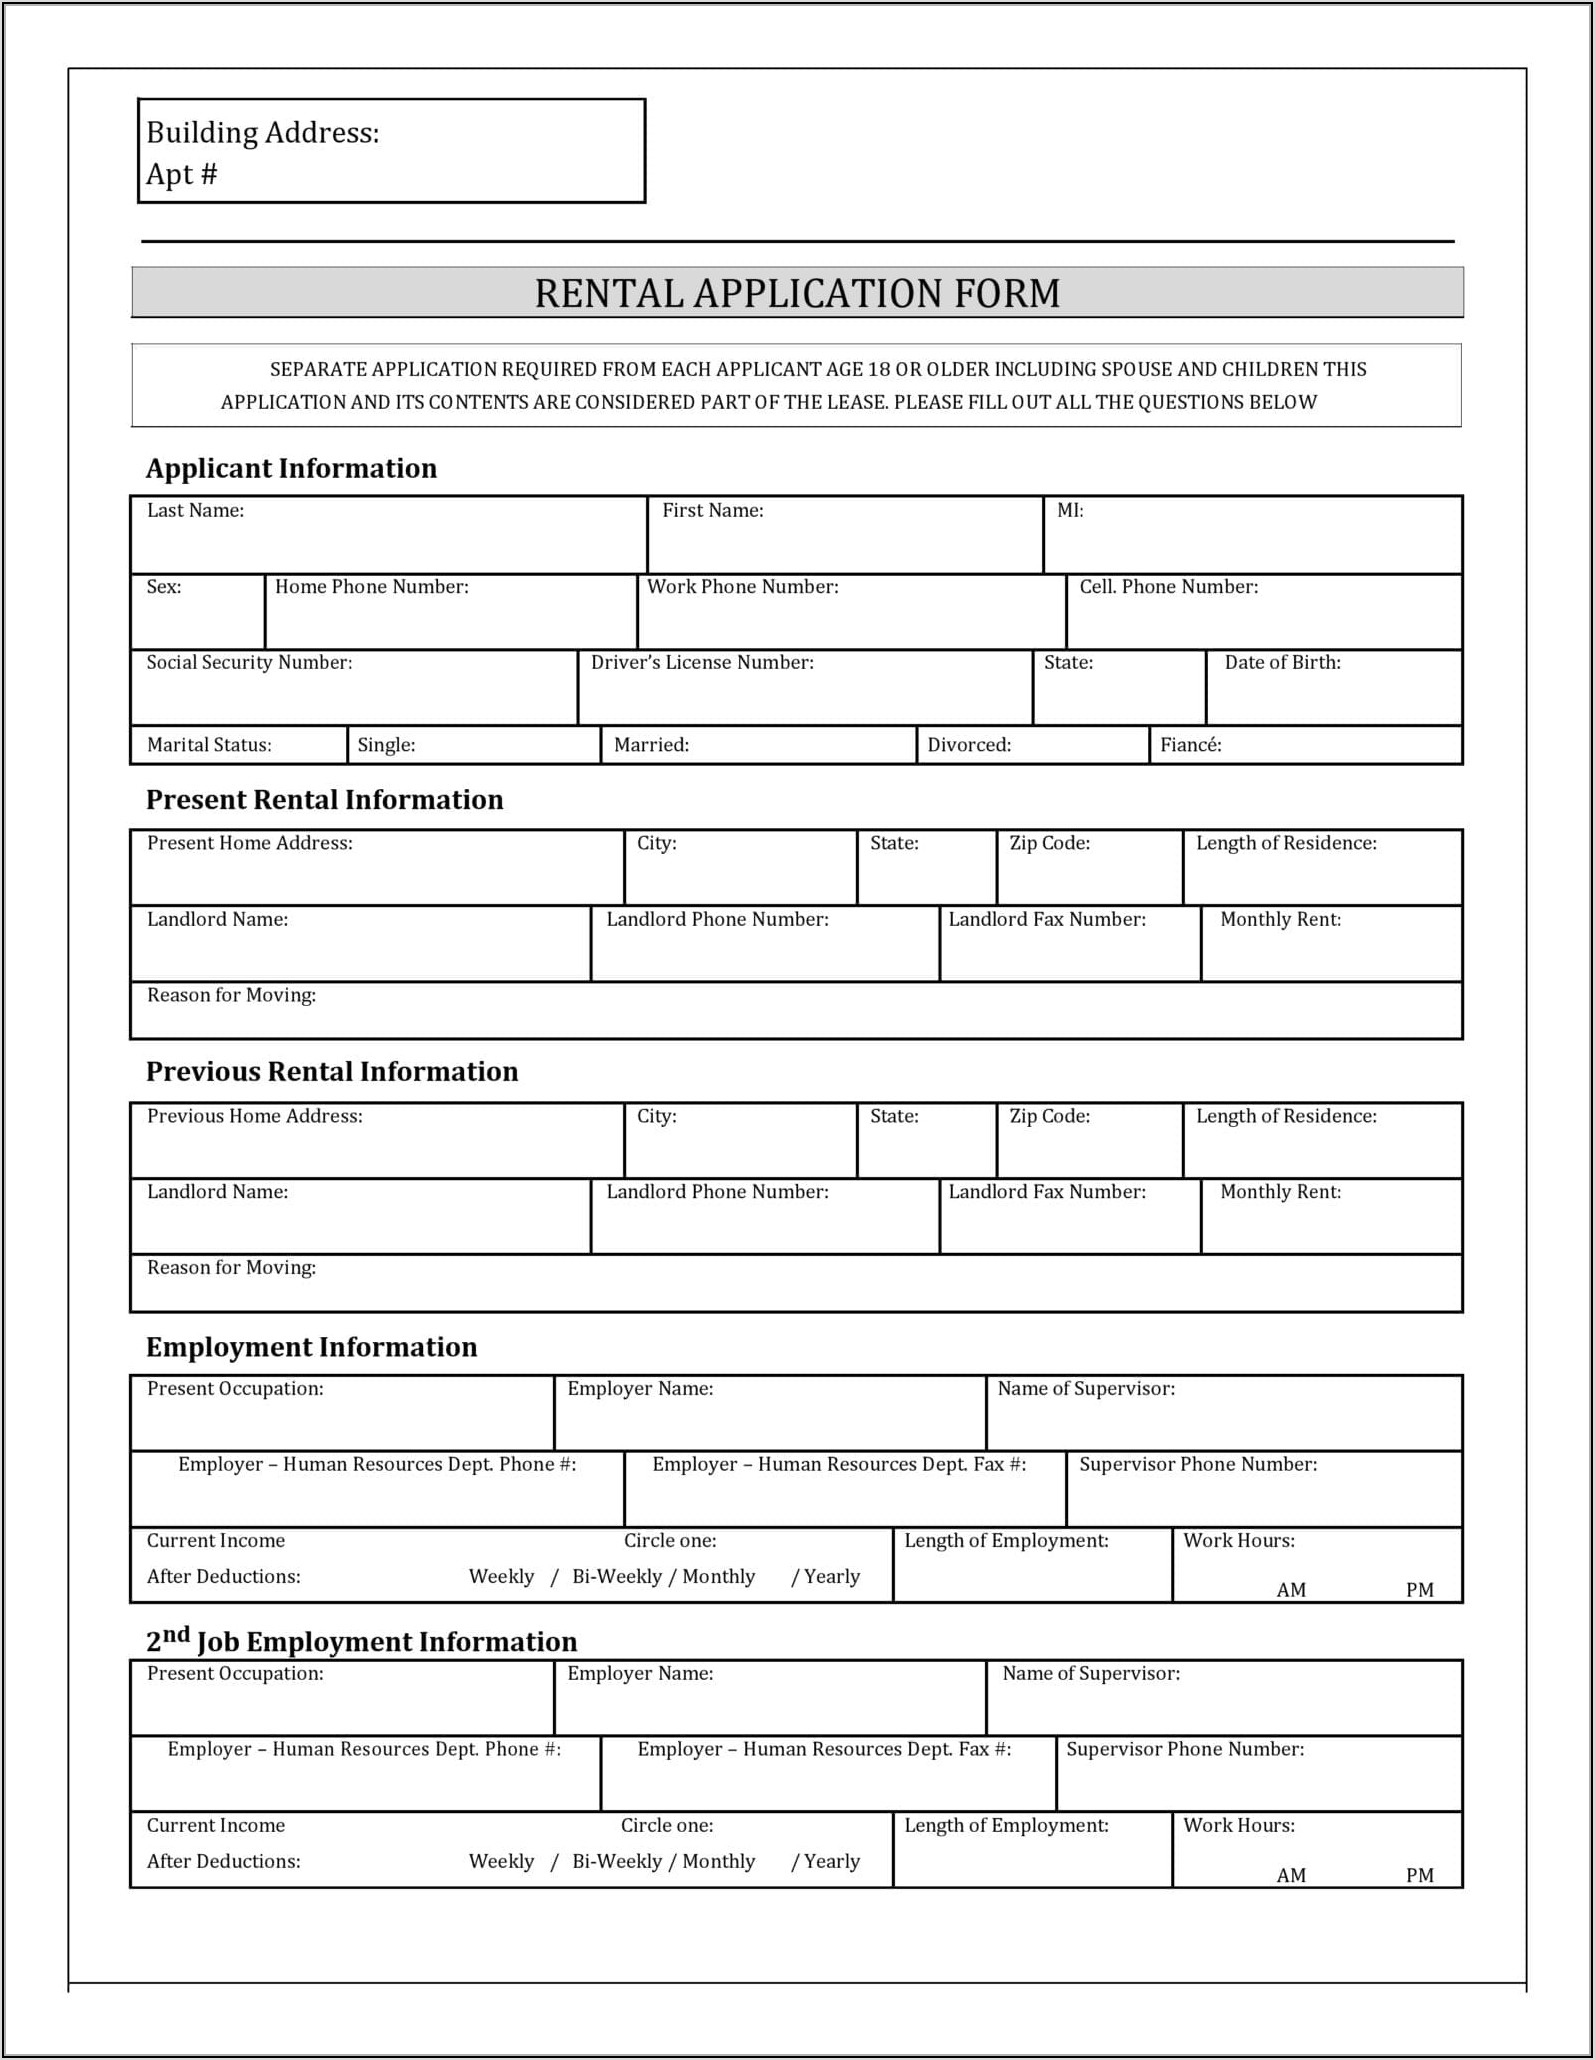 Rental Application Form Free Pdf